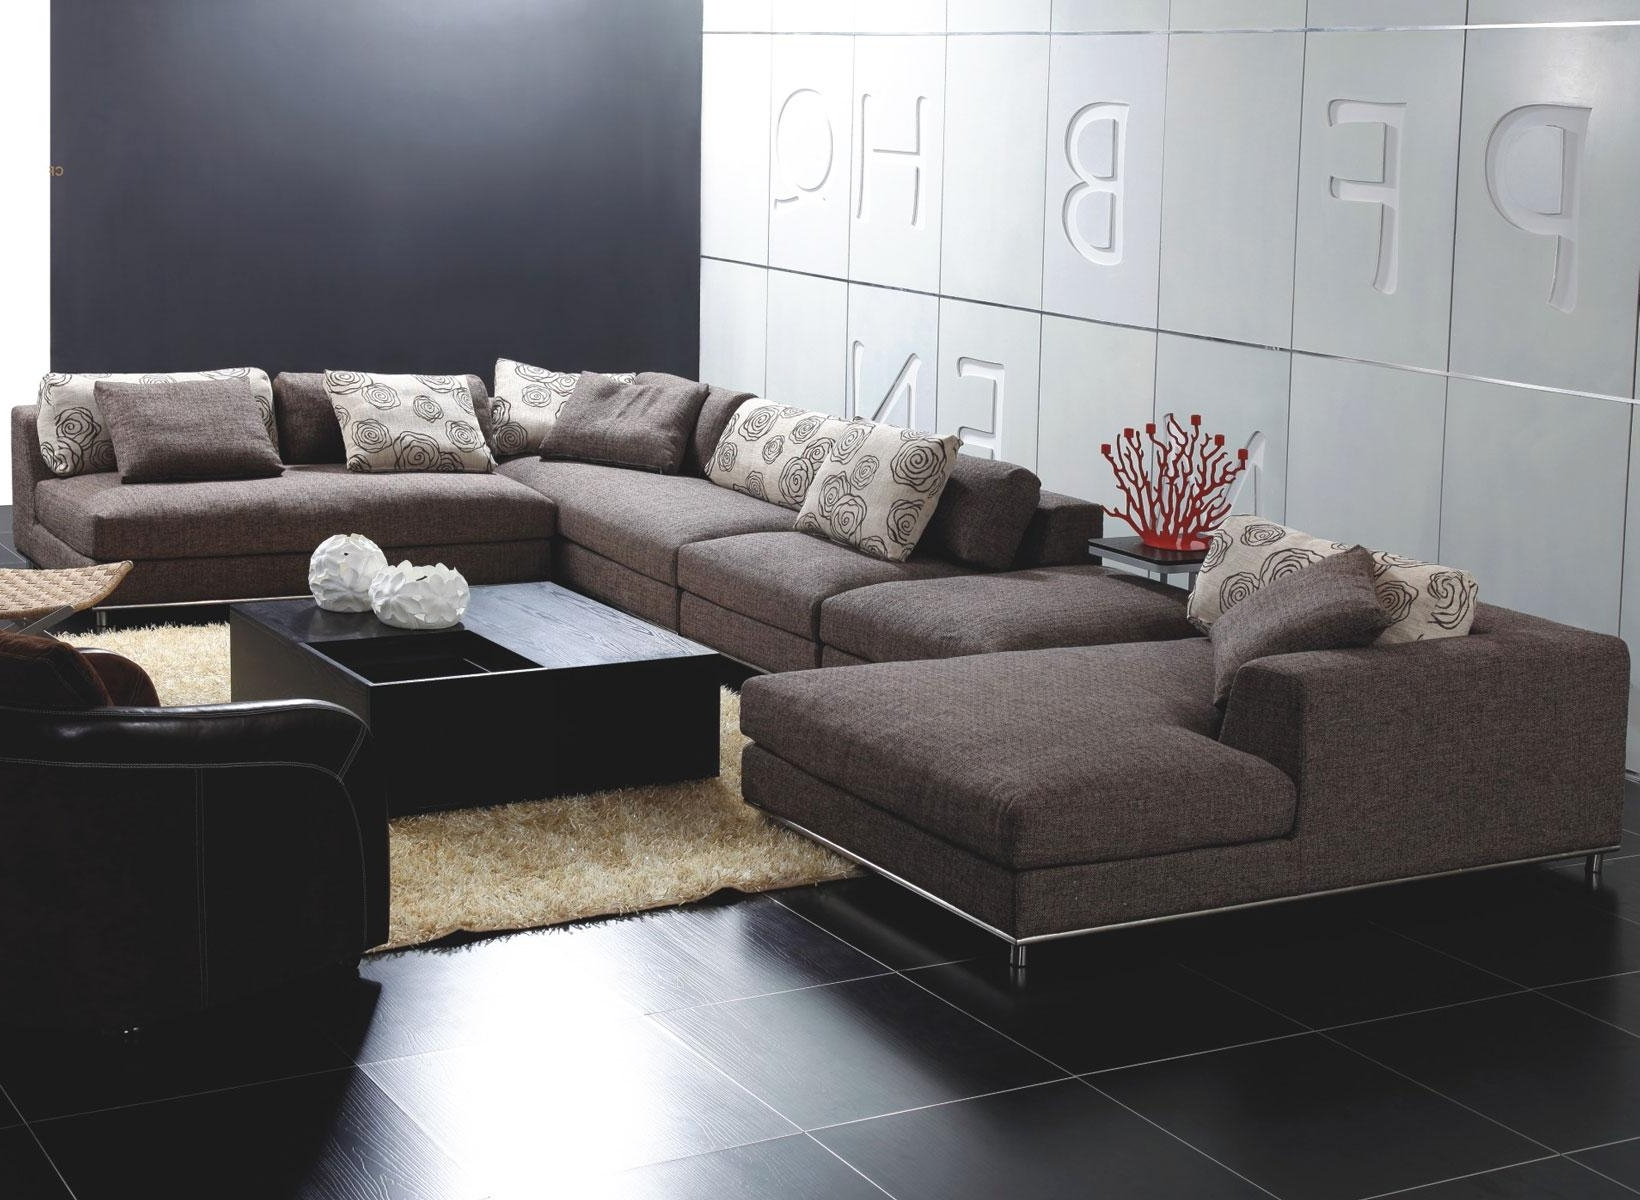 Cheap Used Sectional Sofas – Hotelsbacau Regarding 2019 Used Sectional Sofas (View 3 of 20)